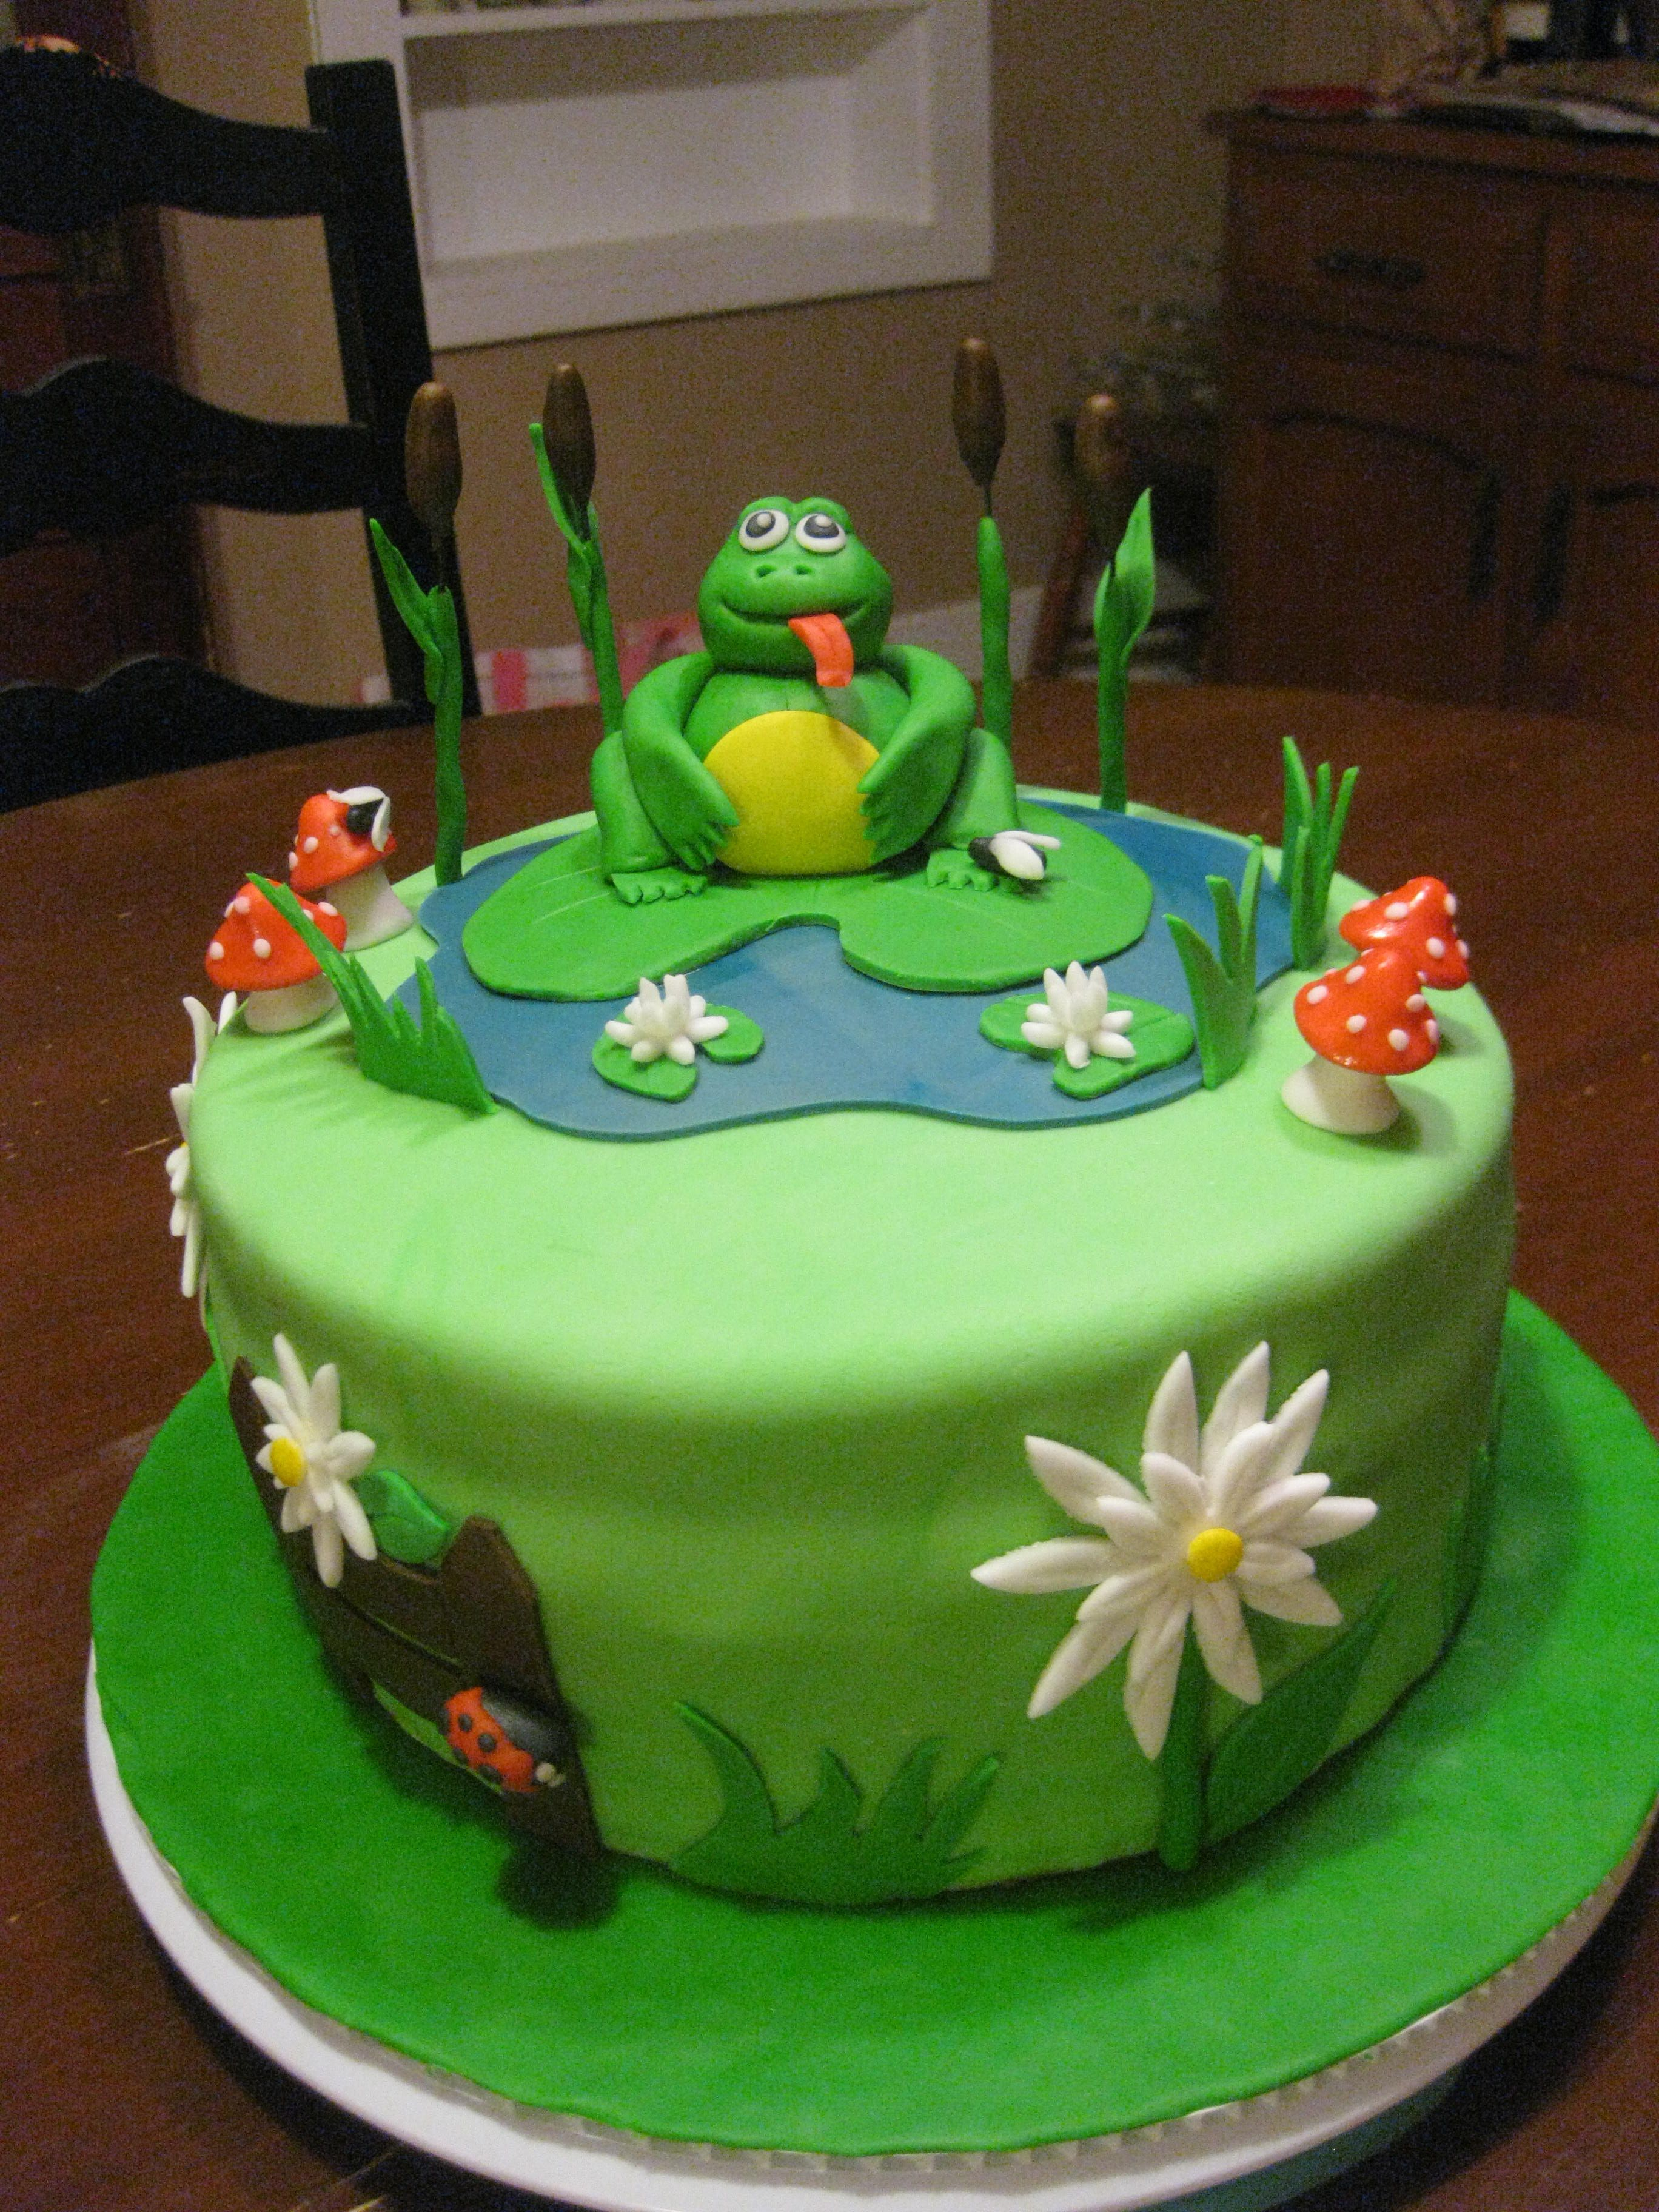 Frog Cakes Frog Cakes And Frog Birthday Cakes Cake Decorating